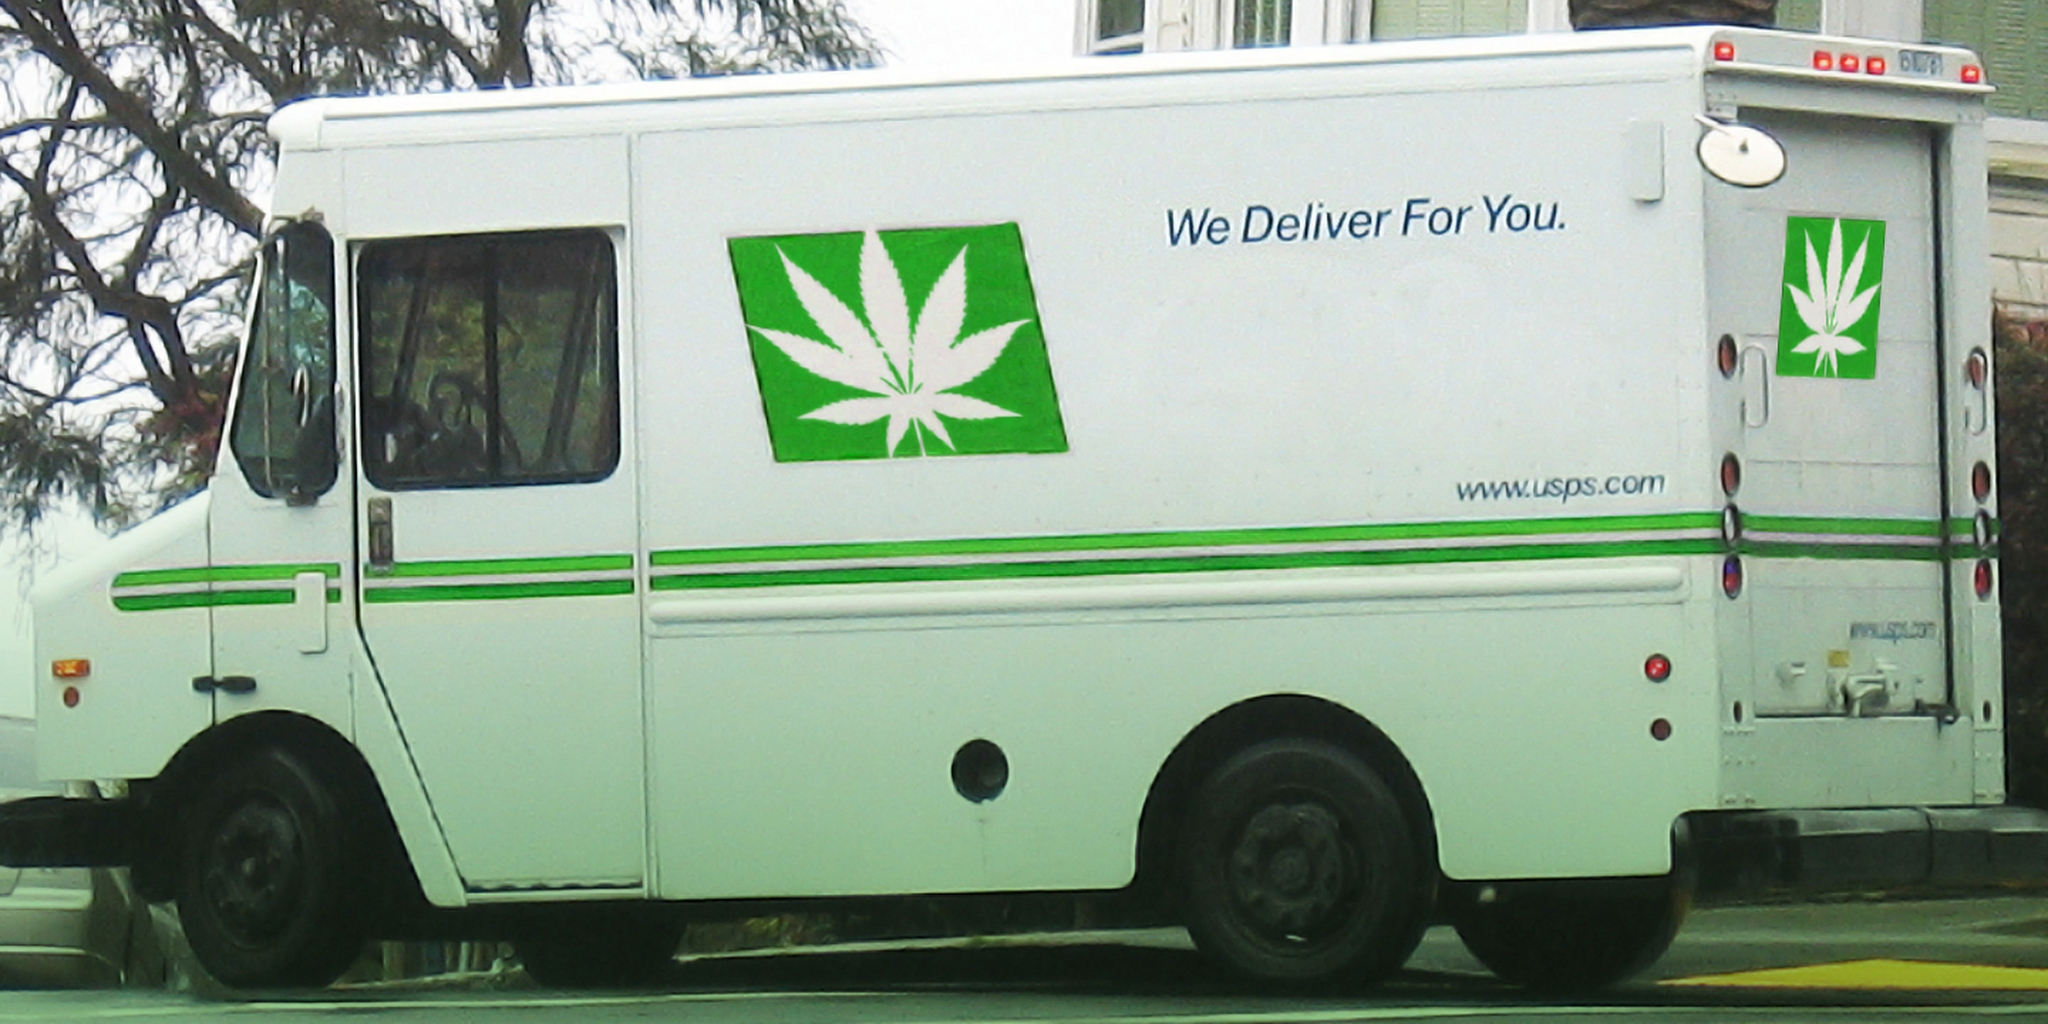 This pot shop claims to deliver to your doorstep | The Daily Dot